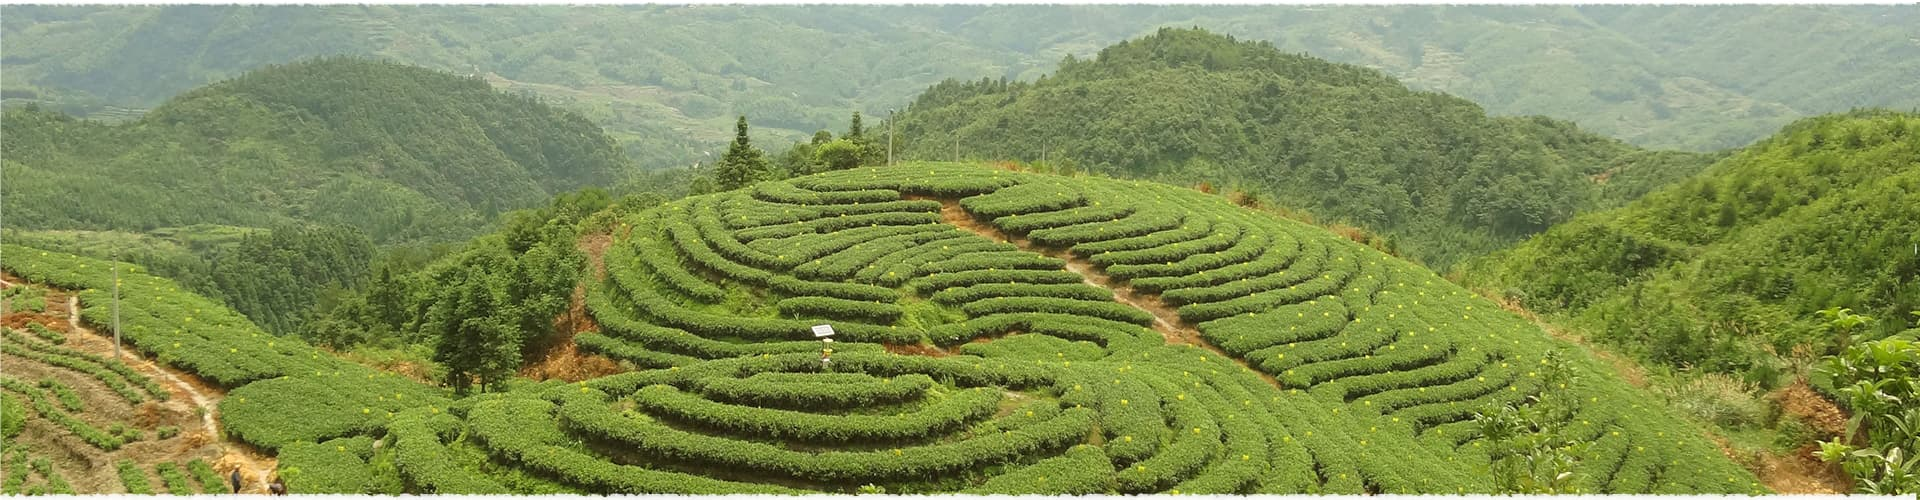 Nanguang Tea Garden